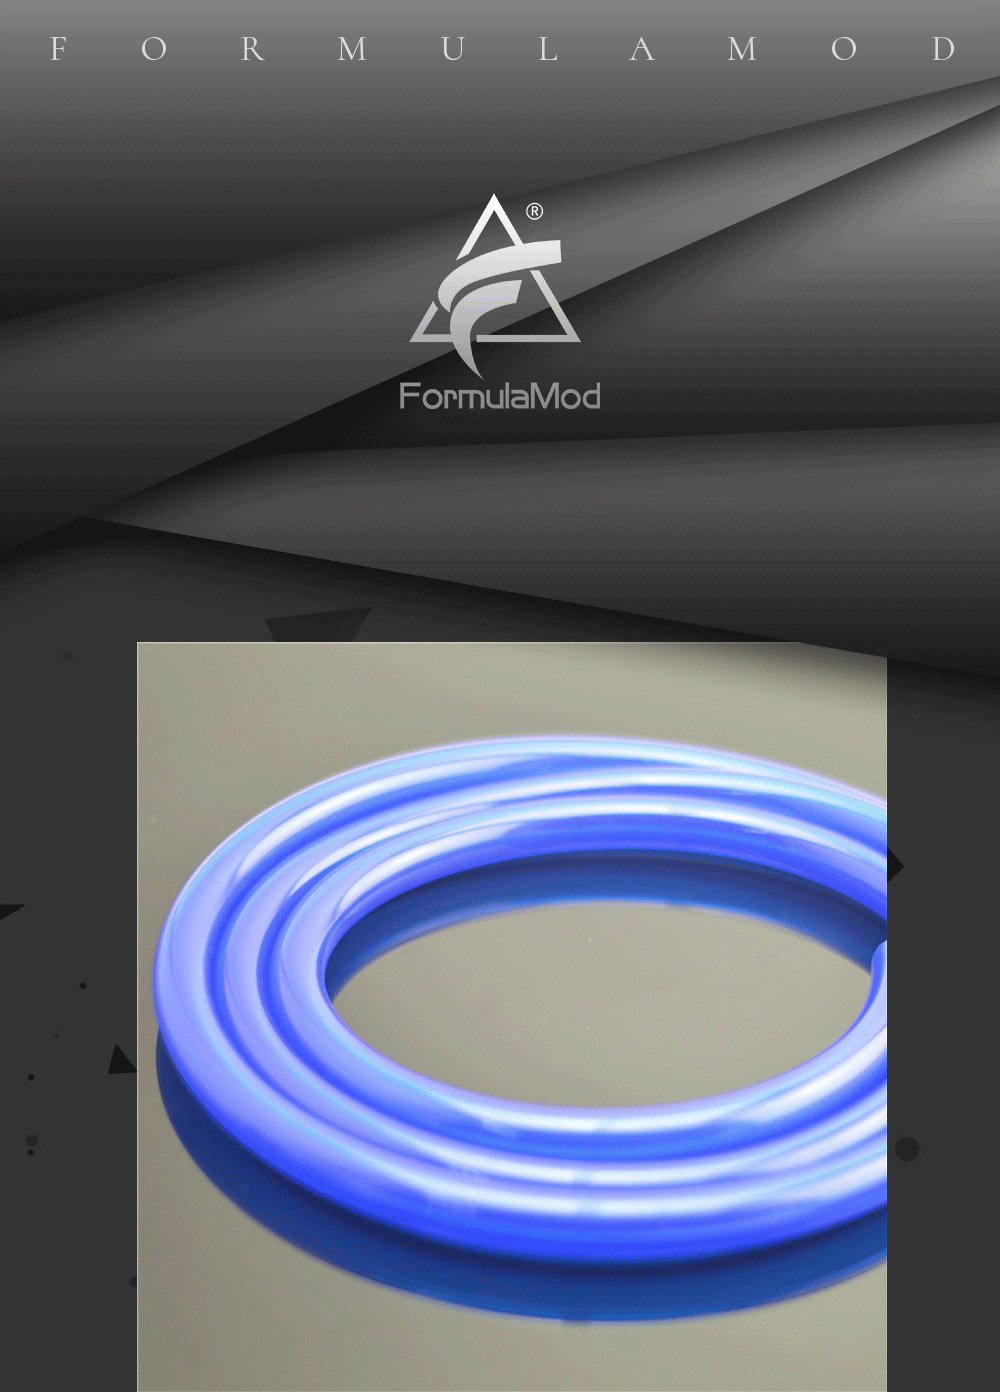 """FormulaMod Fm-3FHG, 3/8""""ID*5/8""""OD 10x16mm Soft Tubes, For Water Cooling System Pipeline Construction, 1 Meter/pcs"""